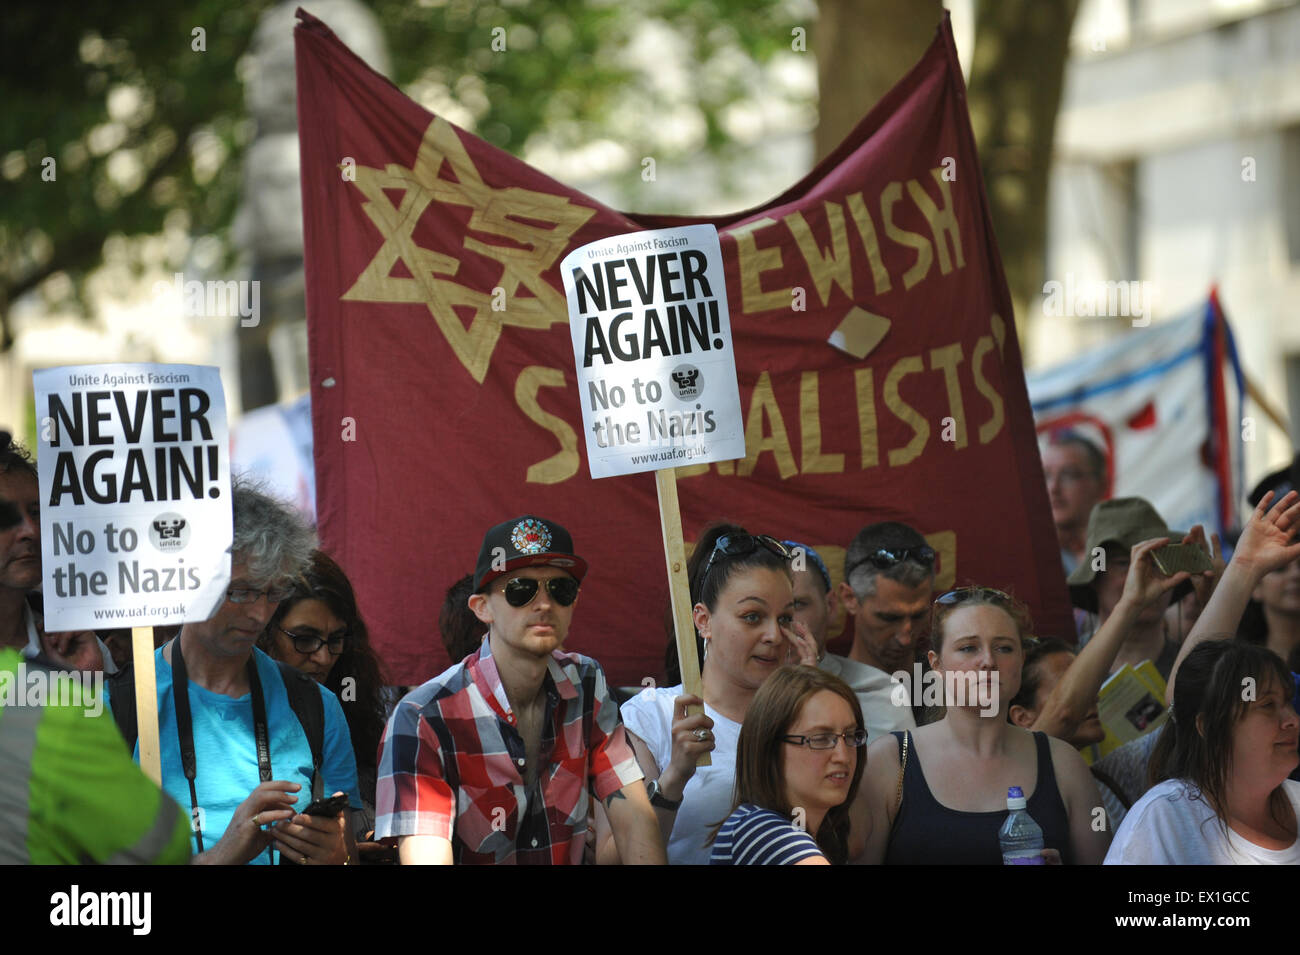 Image result for unite against fascism whitehall protest anti semitism